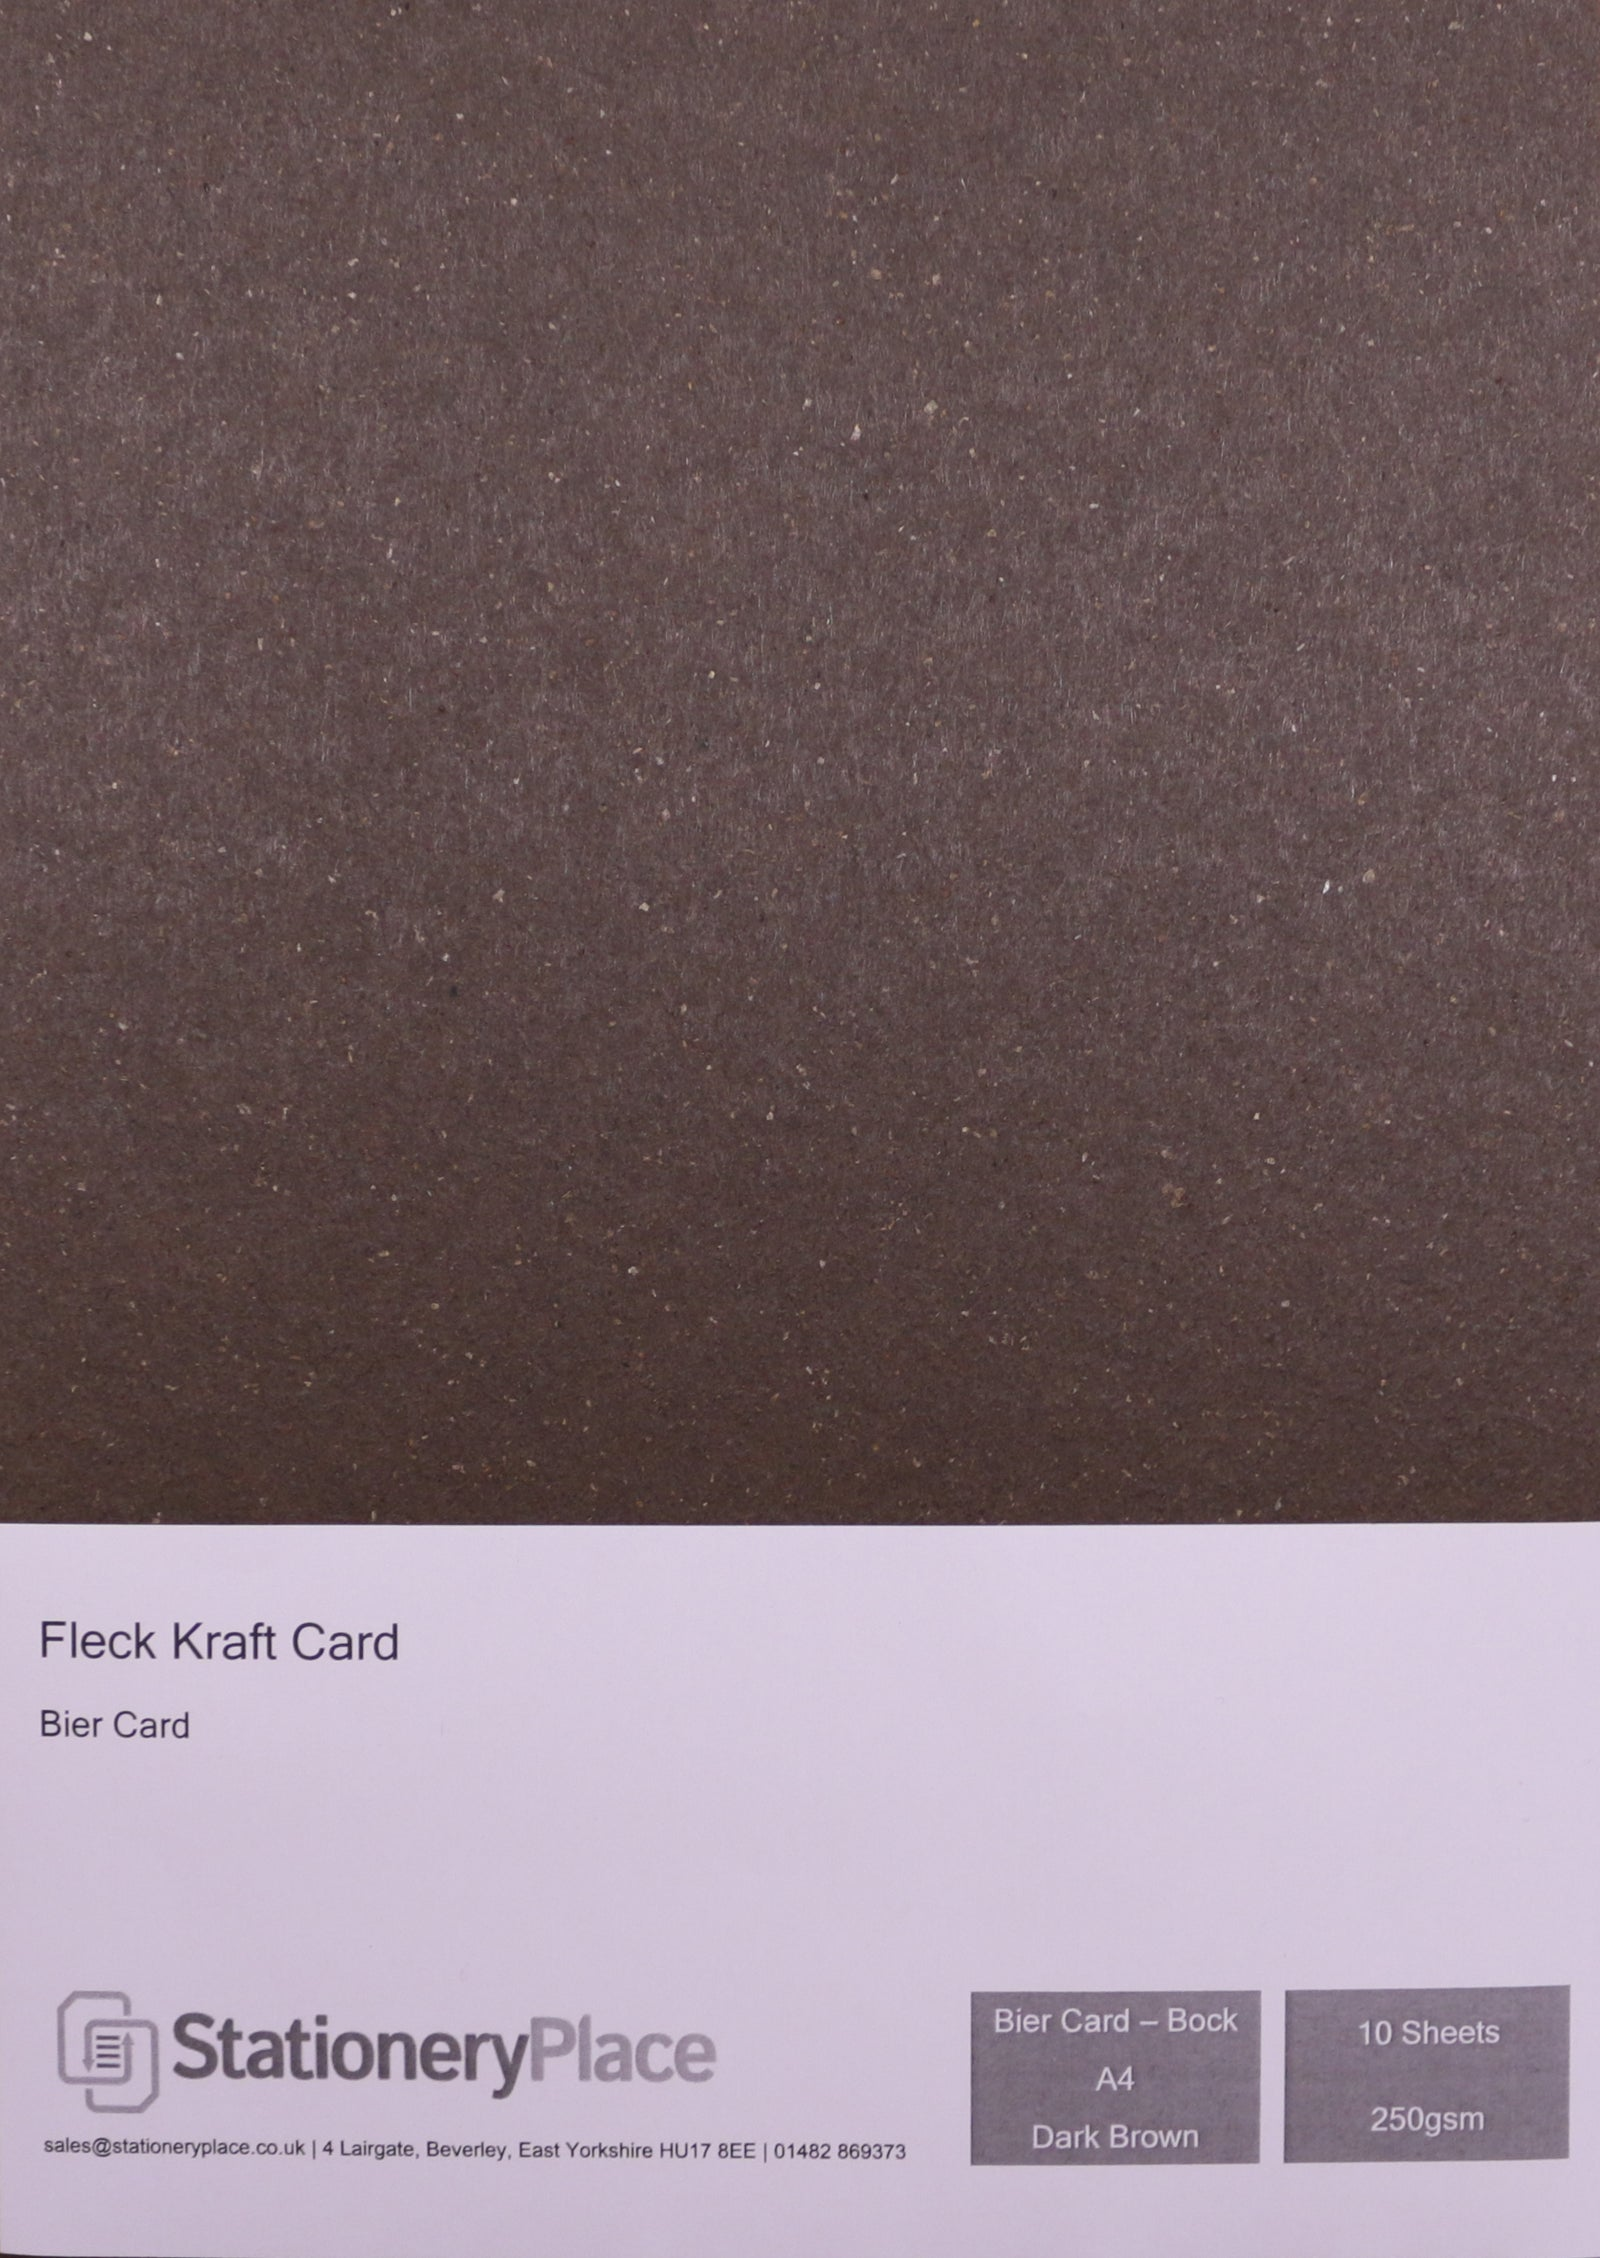 Bier Premium Quality A4 Fleck Craft Card 250gsm. 100% Recycled Kraft Card. Choice of Colour 10 sheet packs